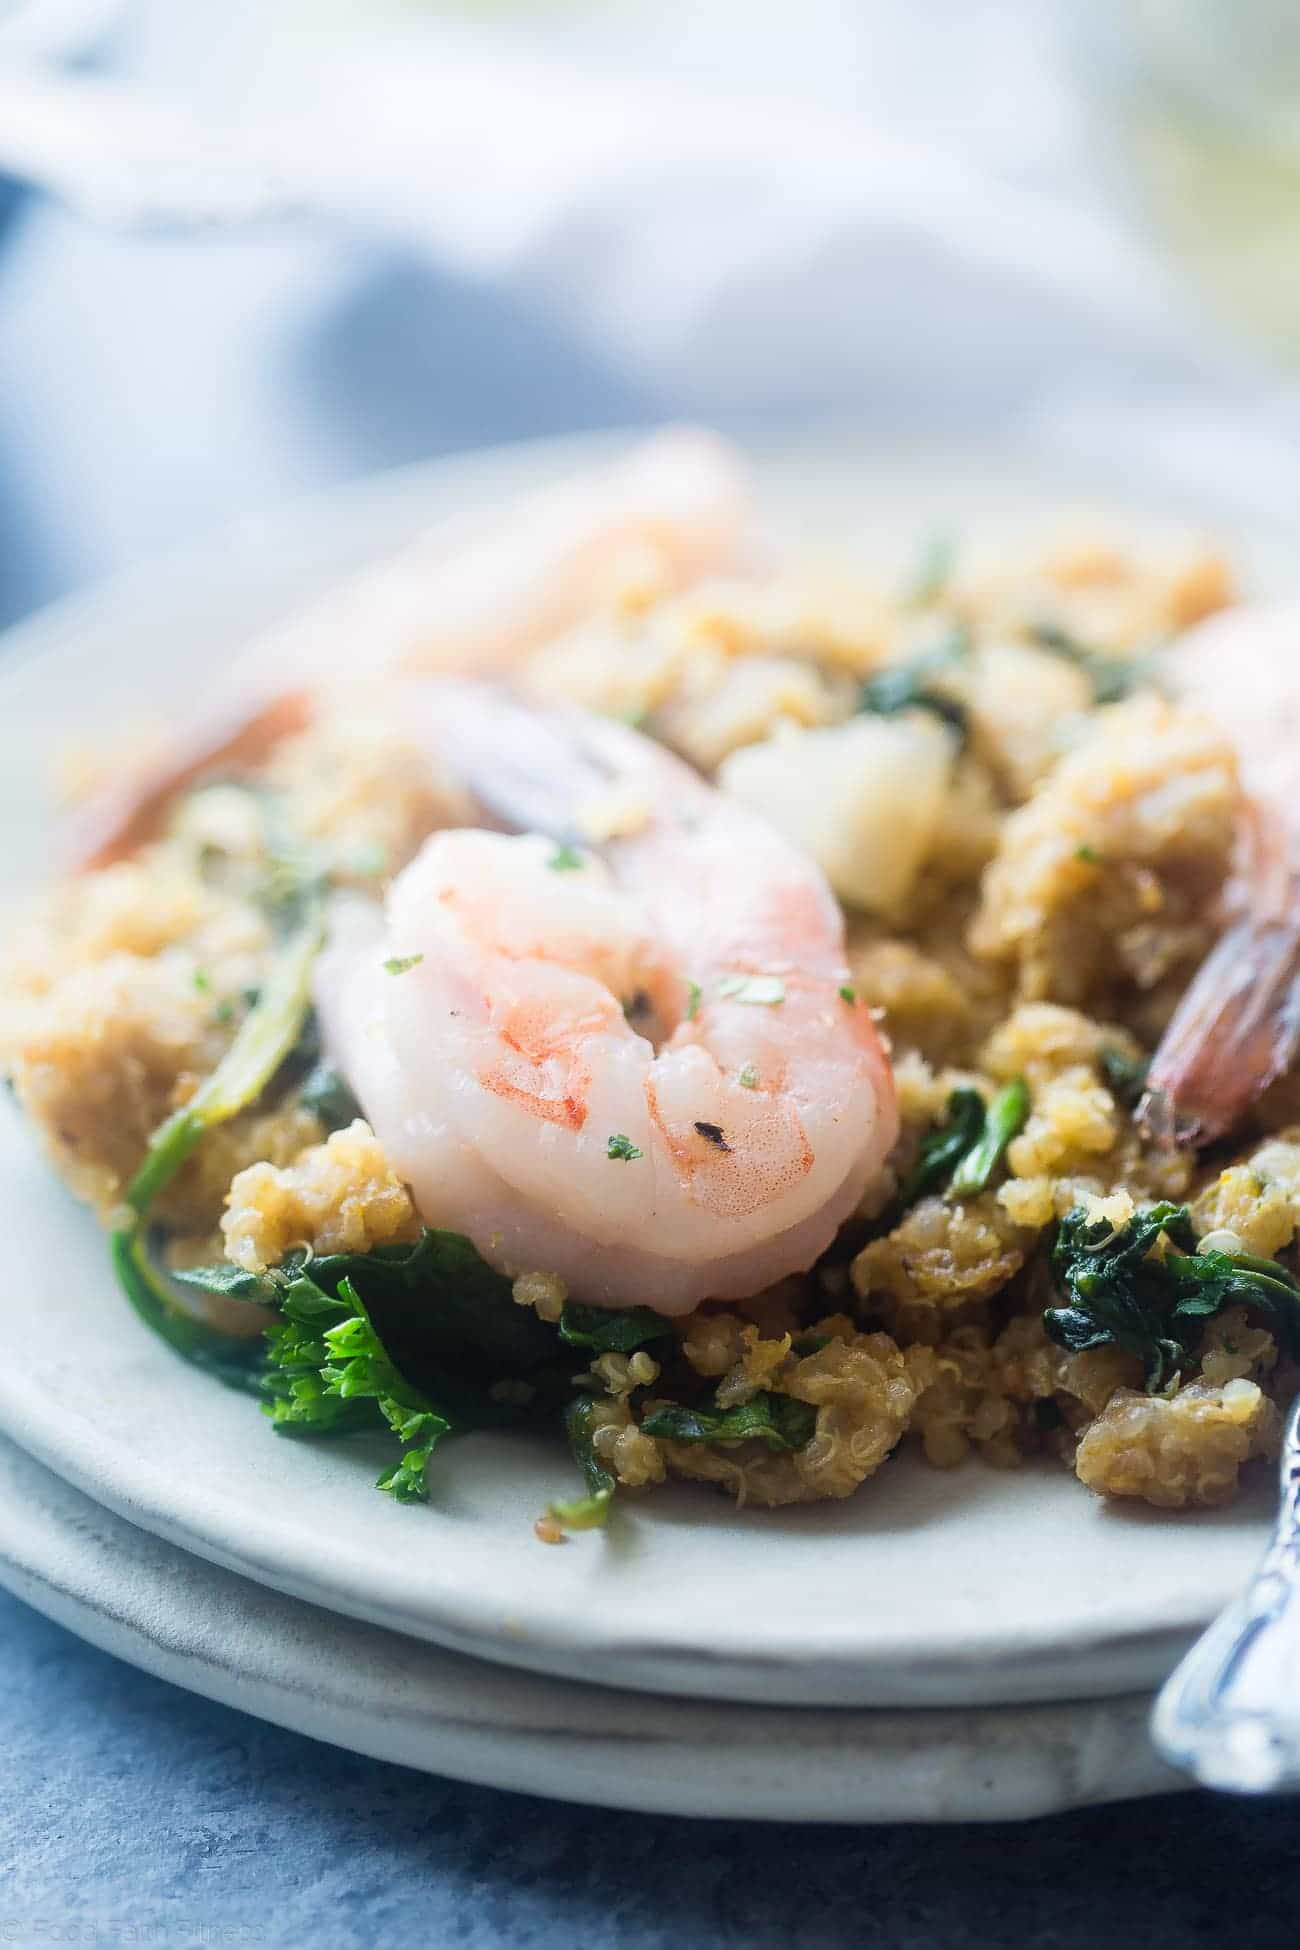 Slow Cooker Garlic Butter Shrimp and Quinoa - This easy, 7 ingredient weeknight dinner is made in the slow cooker! It's a healthy, sugar free and protein packed meal that the whole family will love! | Foodfaithfitness.com | @FoodFaithFit